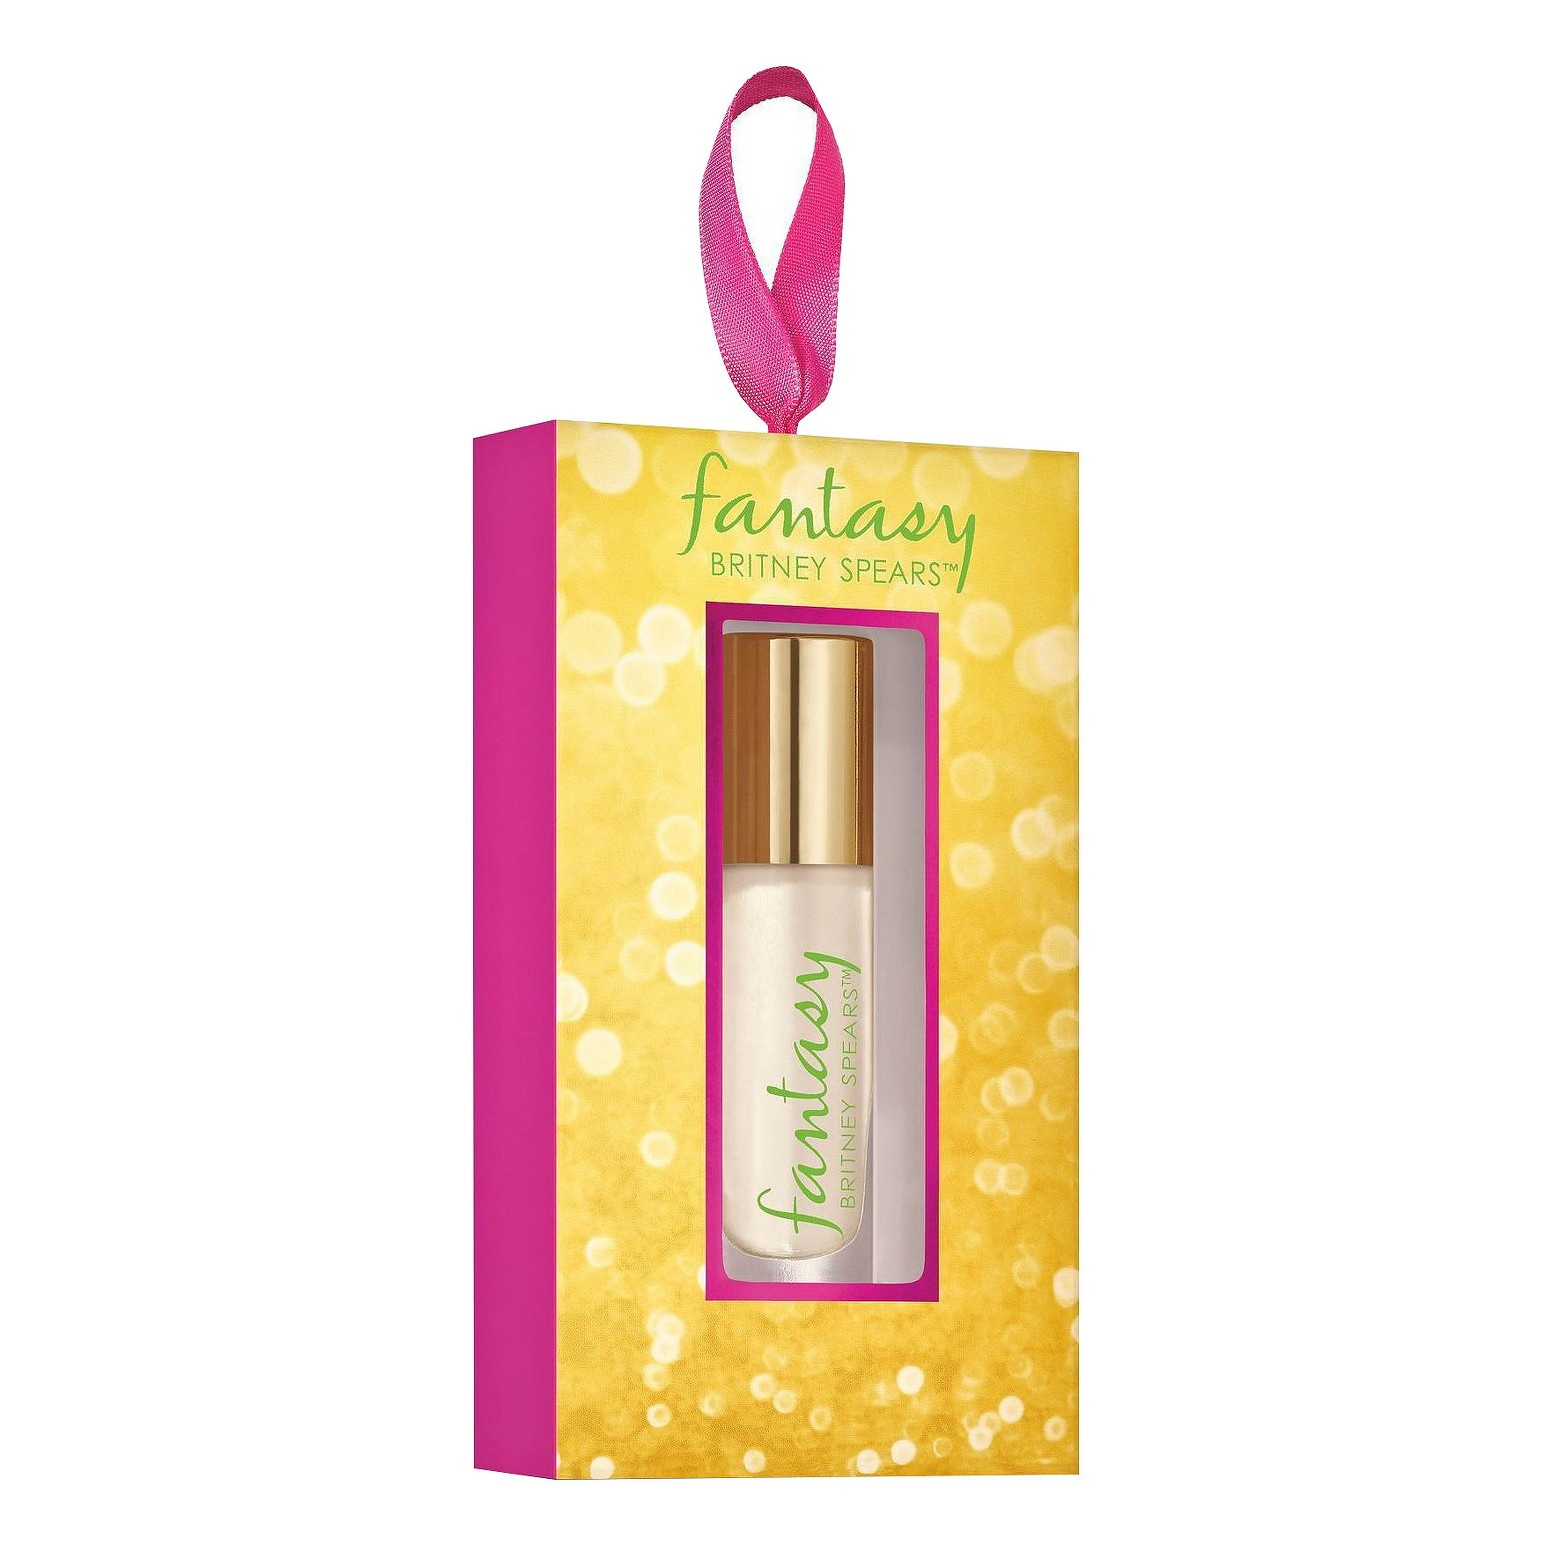 Fantasy by Britney Spears Fragrance Rollerball Ornament   $4.88 at Target.com